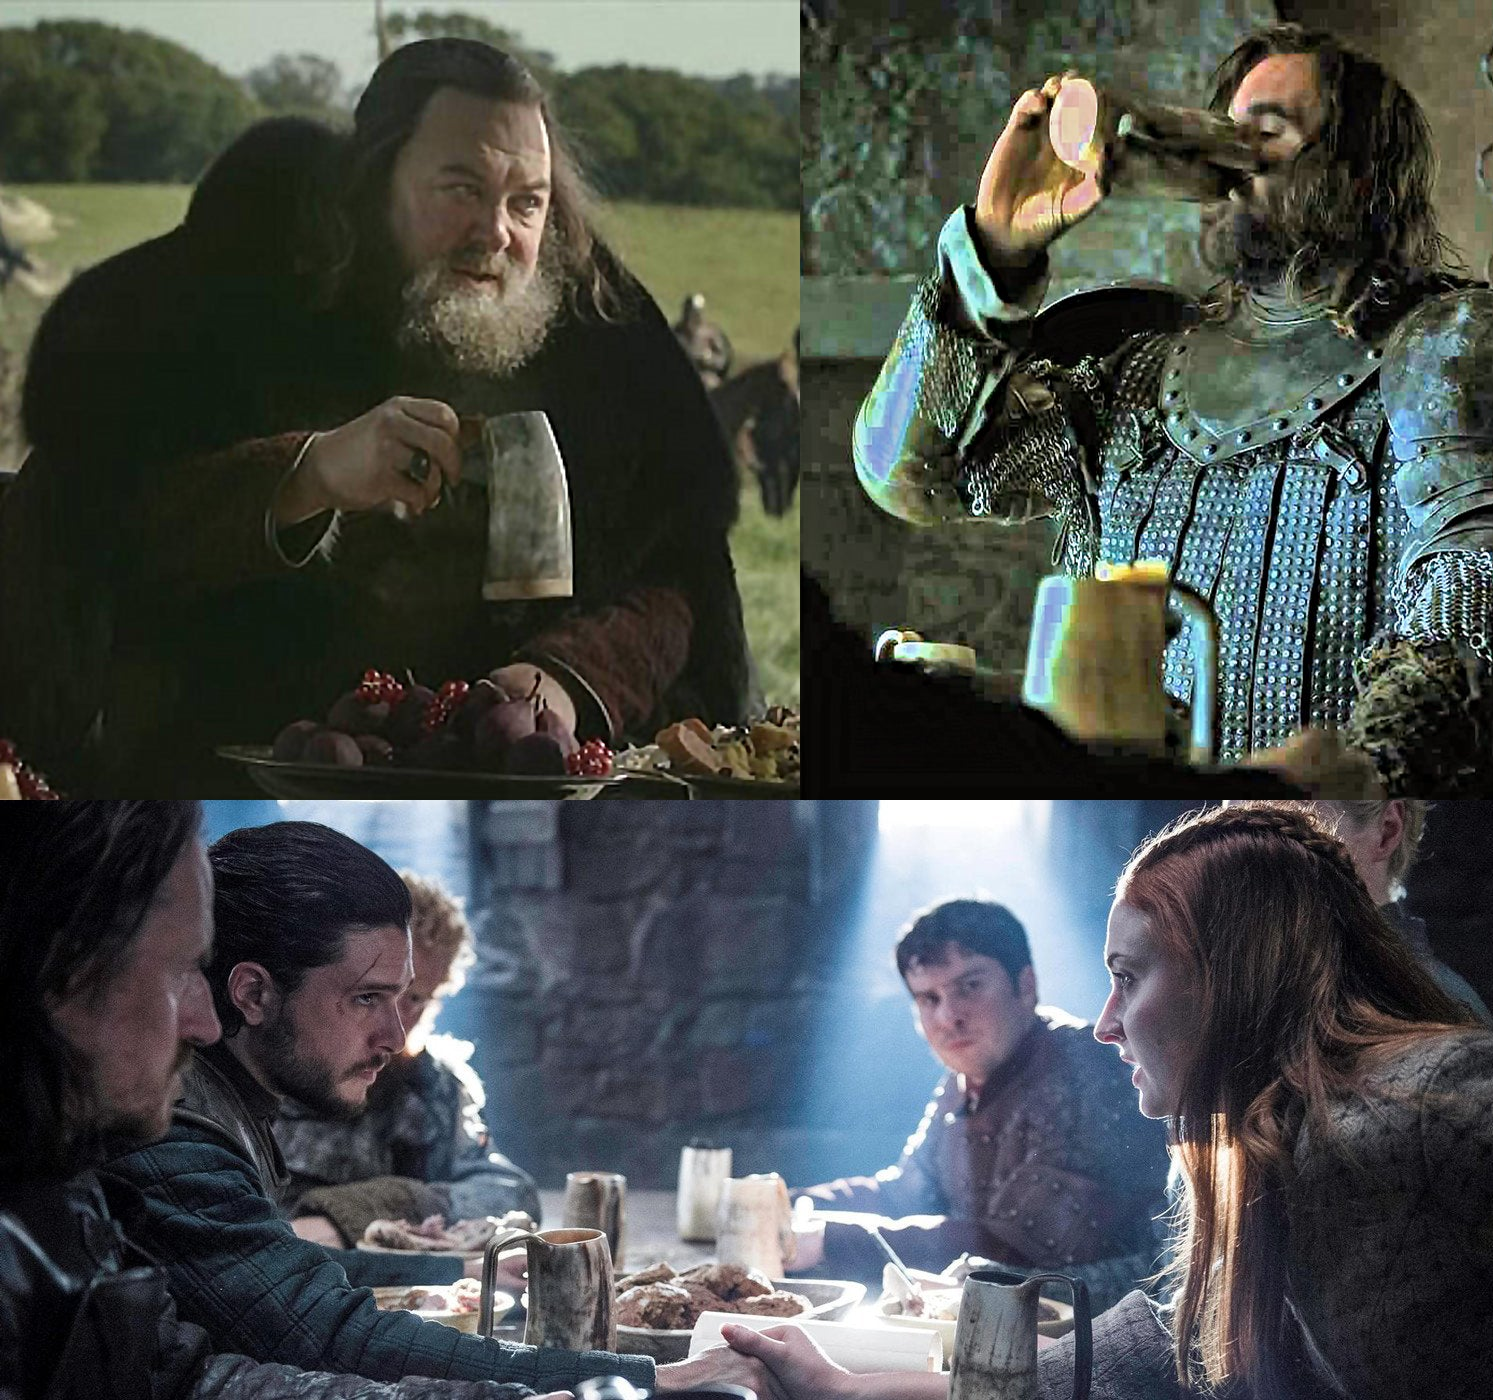 Game of Thrones Drinking from our Horn Beer Mugs - Viking Feasting Supplies